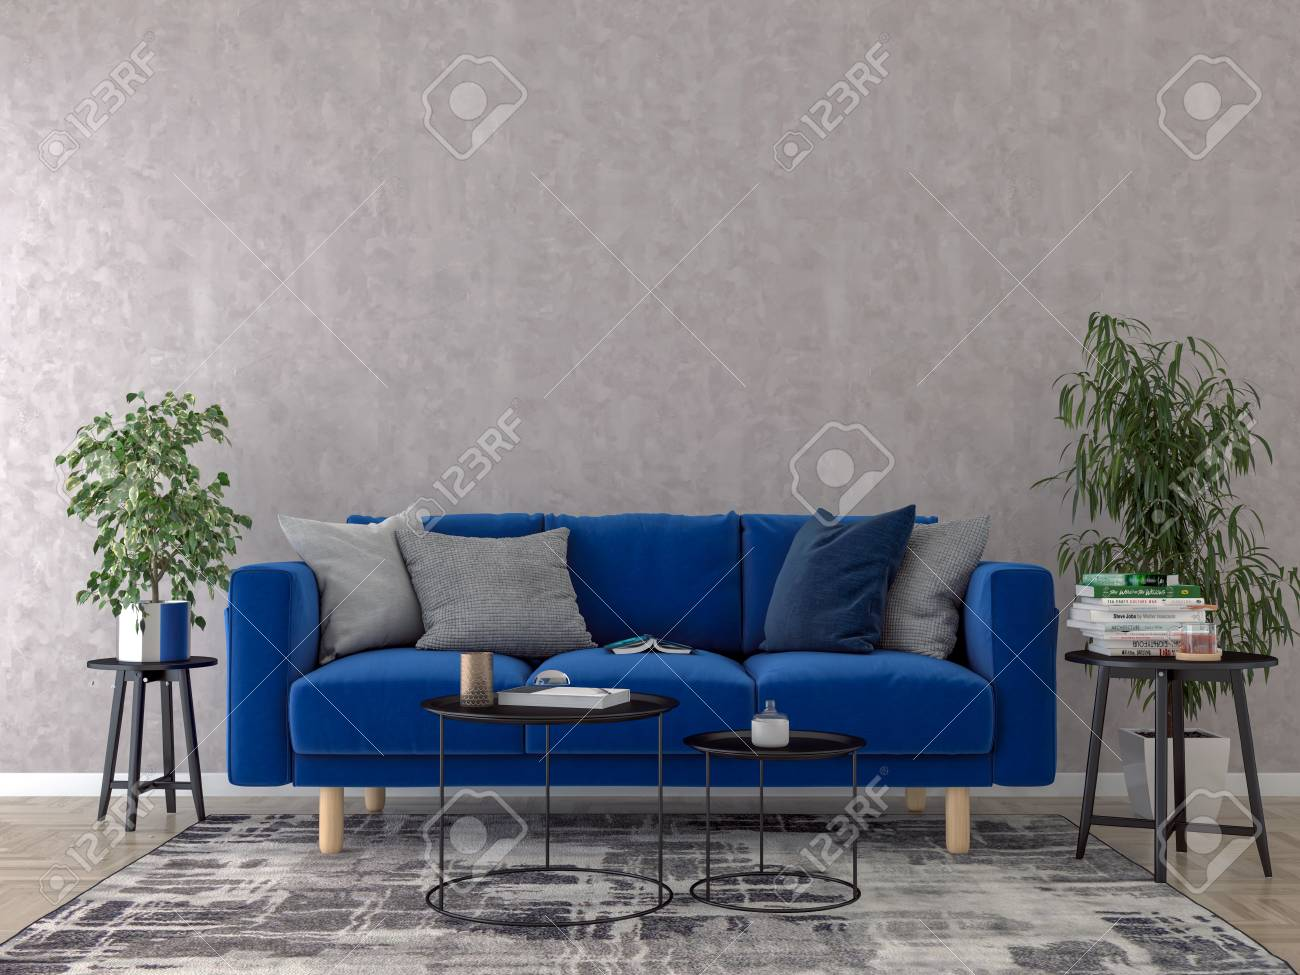 Picture of: Living Room Interior With Blue Sofa Pillows And Coffee Table Stock Photo Picture And Royalty Free Image Image 102831929